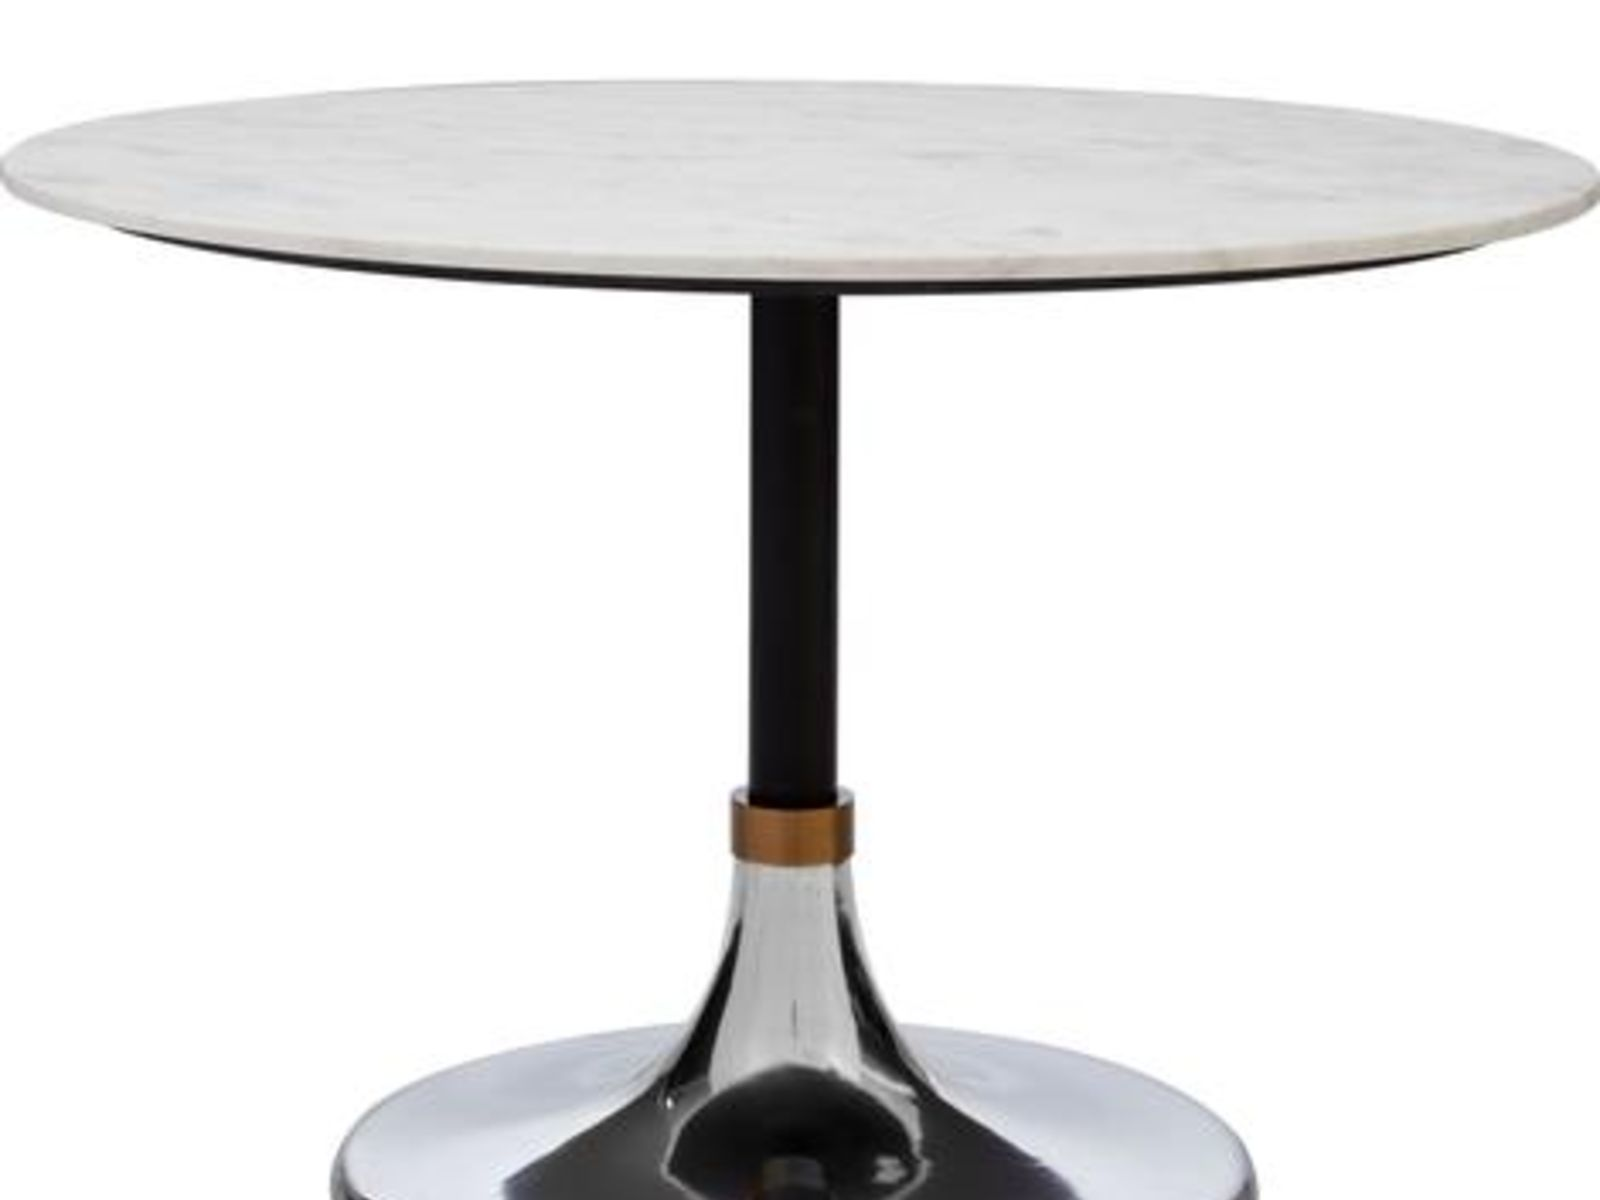 Bistro Tables for Offices